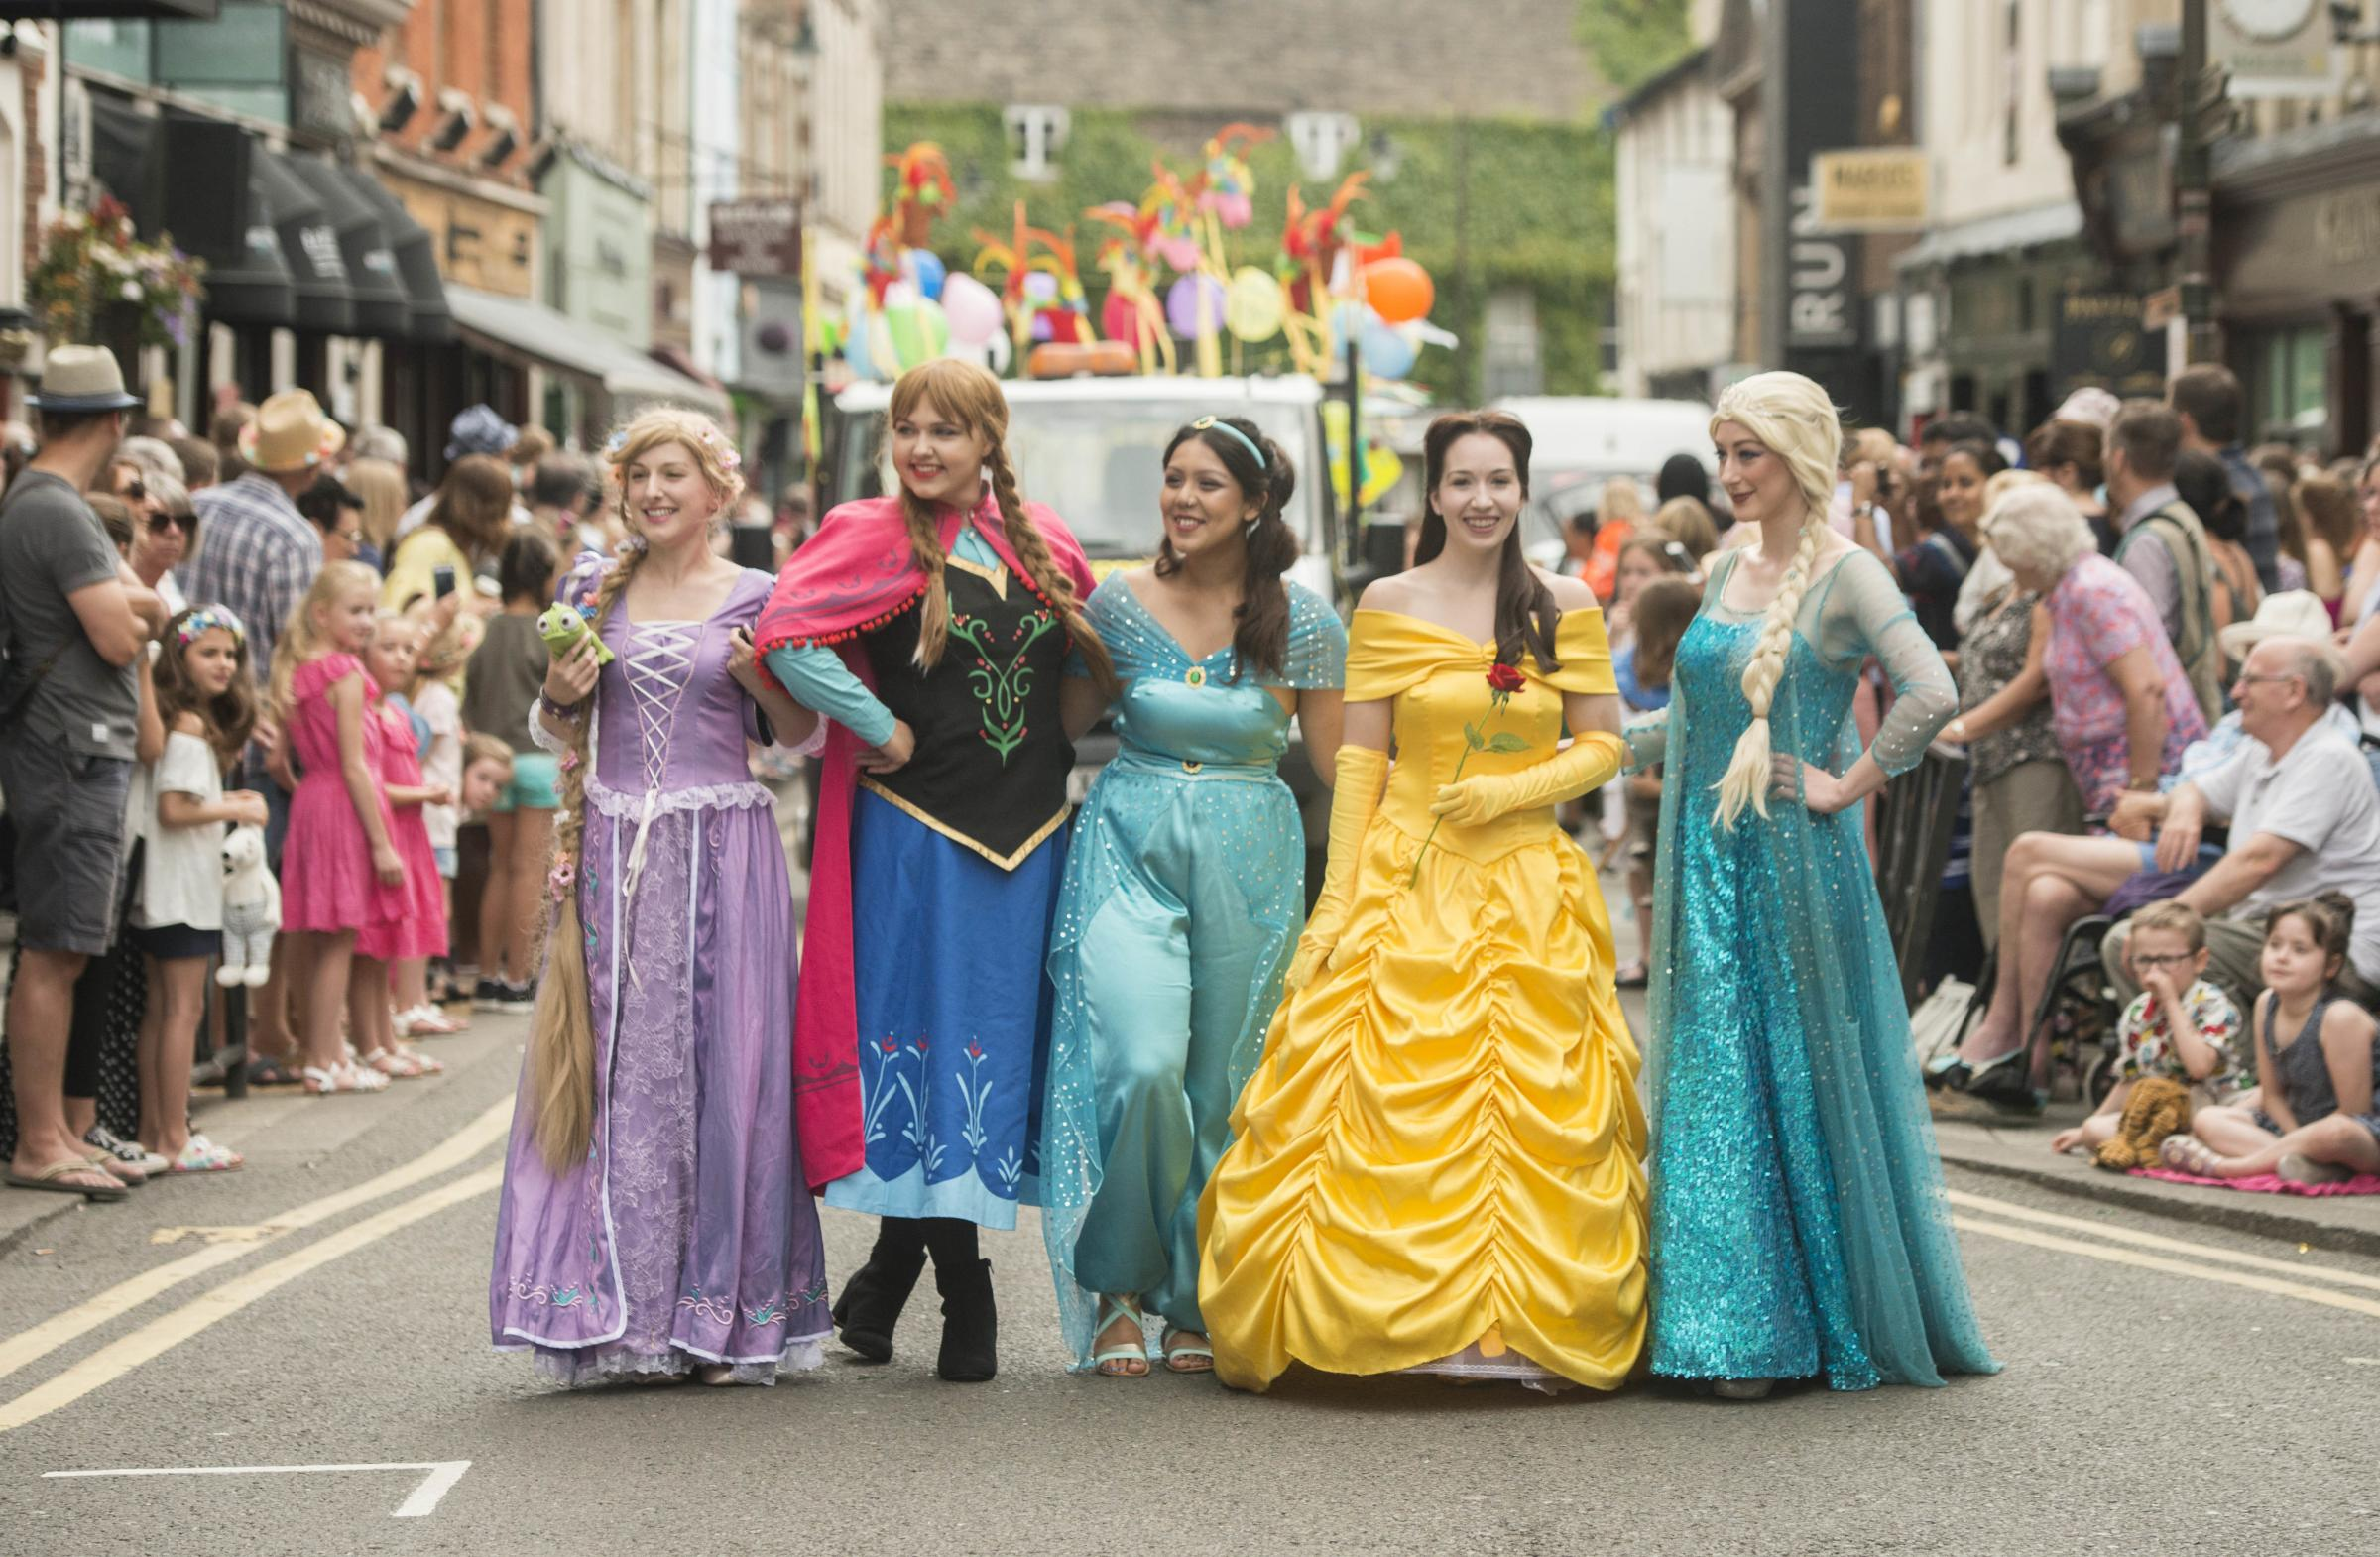 Old Town Festival .Pictured Parade.09/07/17.Pictures Clare Green/ www.claregreenphotography.com.